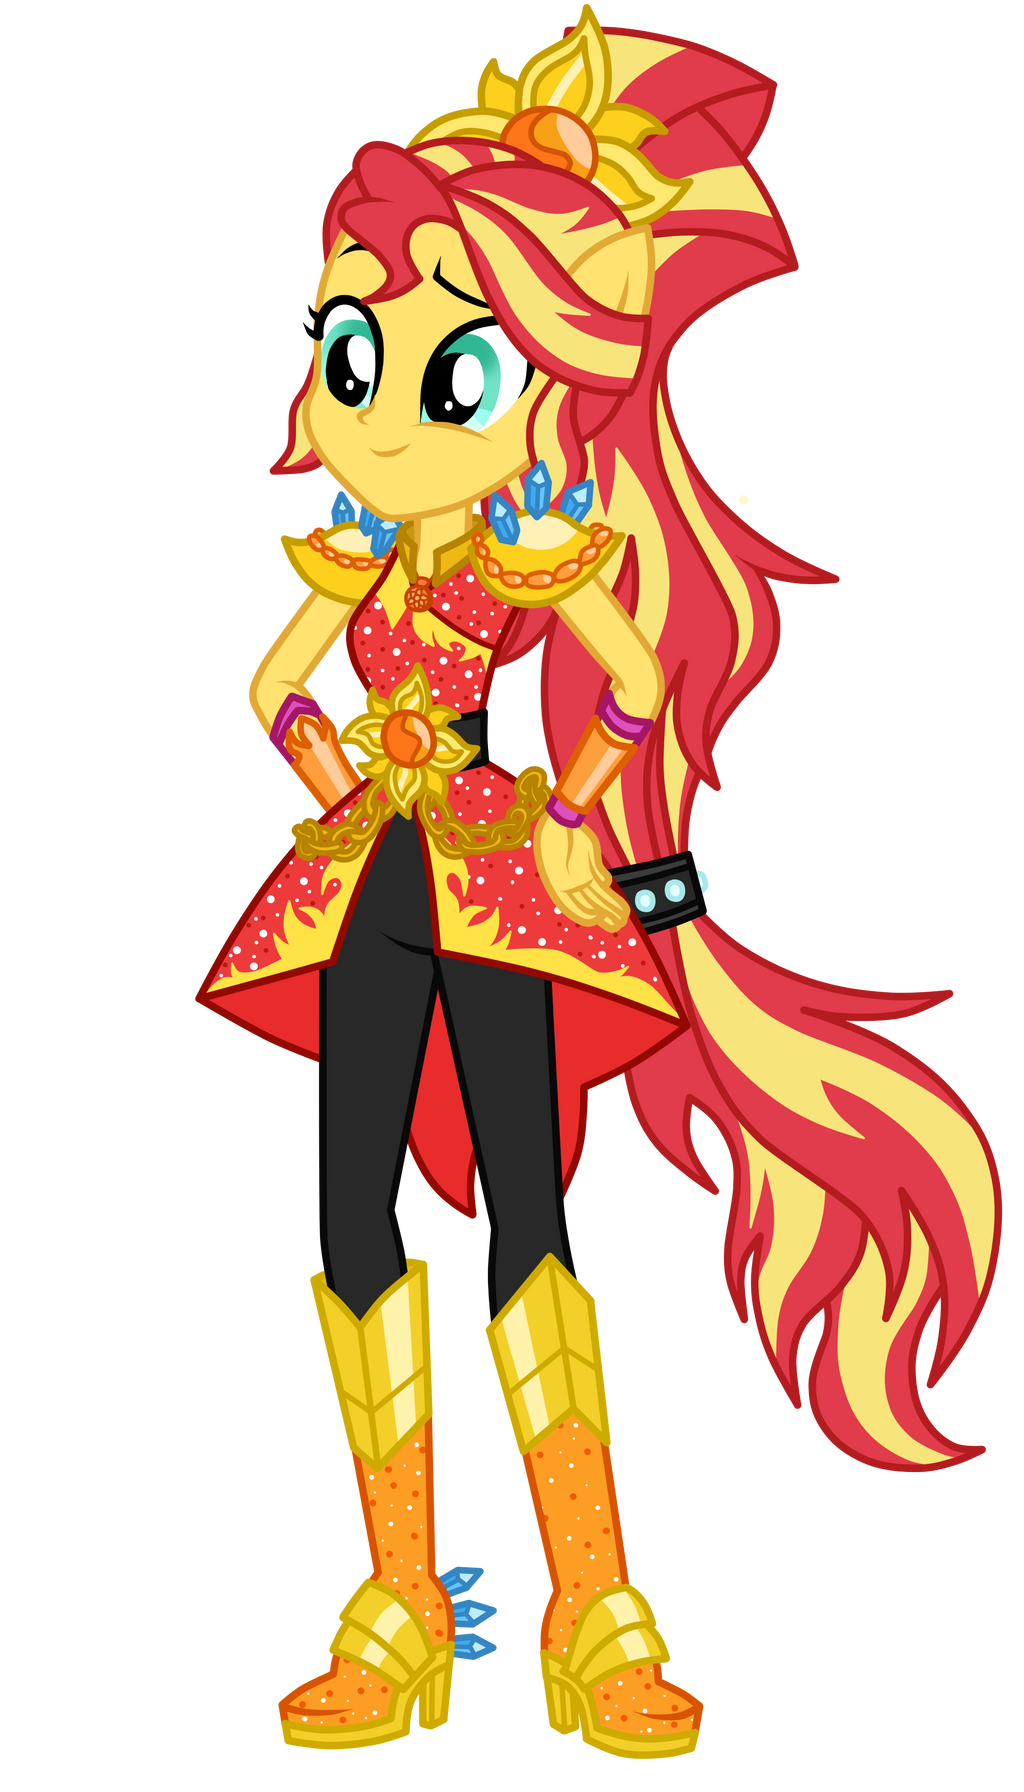 Legend Of Everfree Sunset Shimmer By MixiePie On DeviantArt